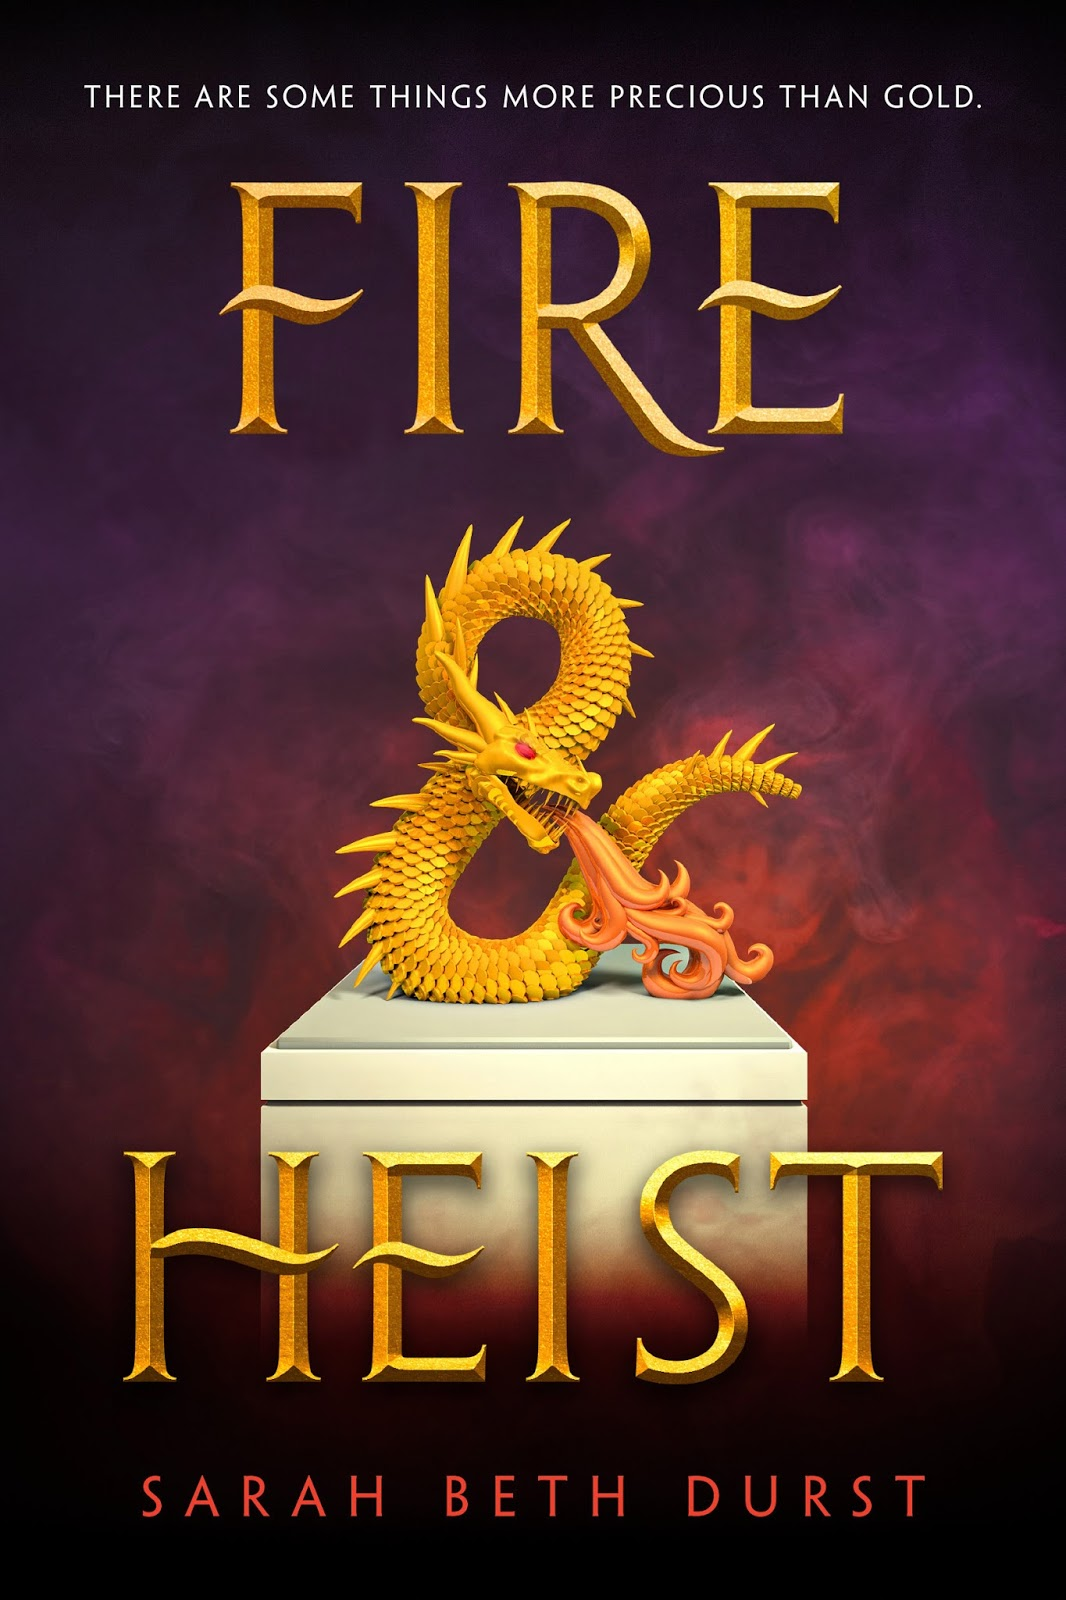 Fire & Heist by Sarah Beth Durst (Initial)